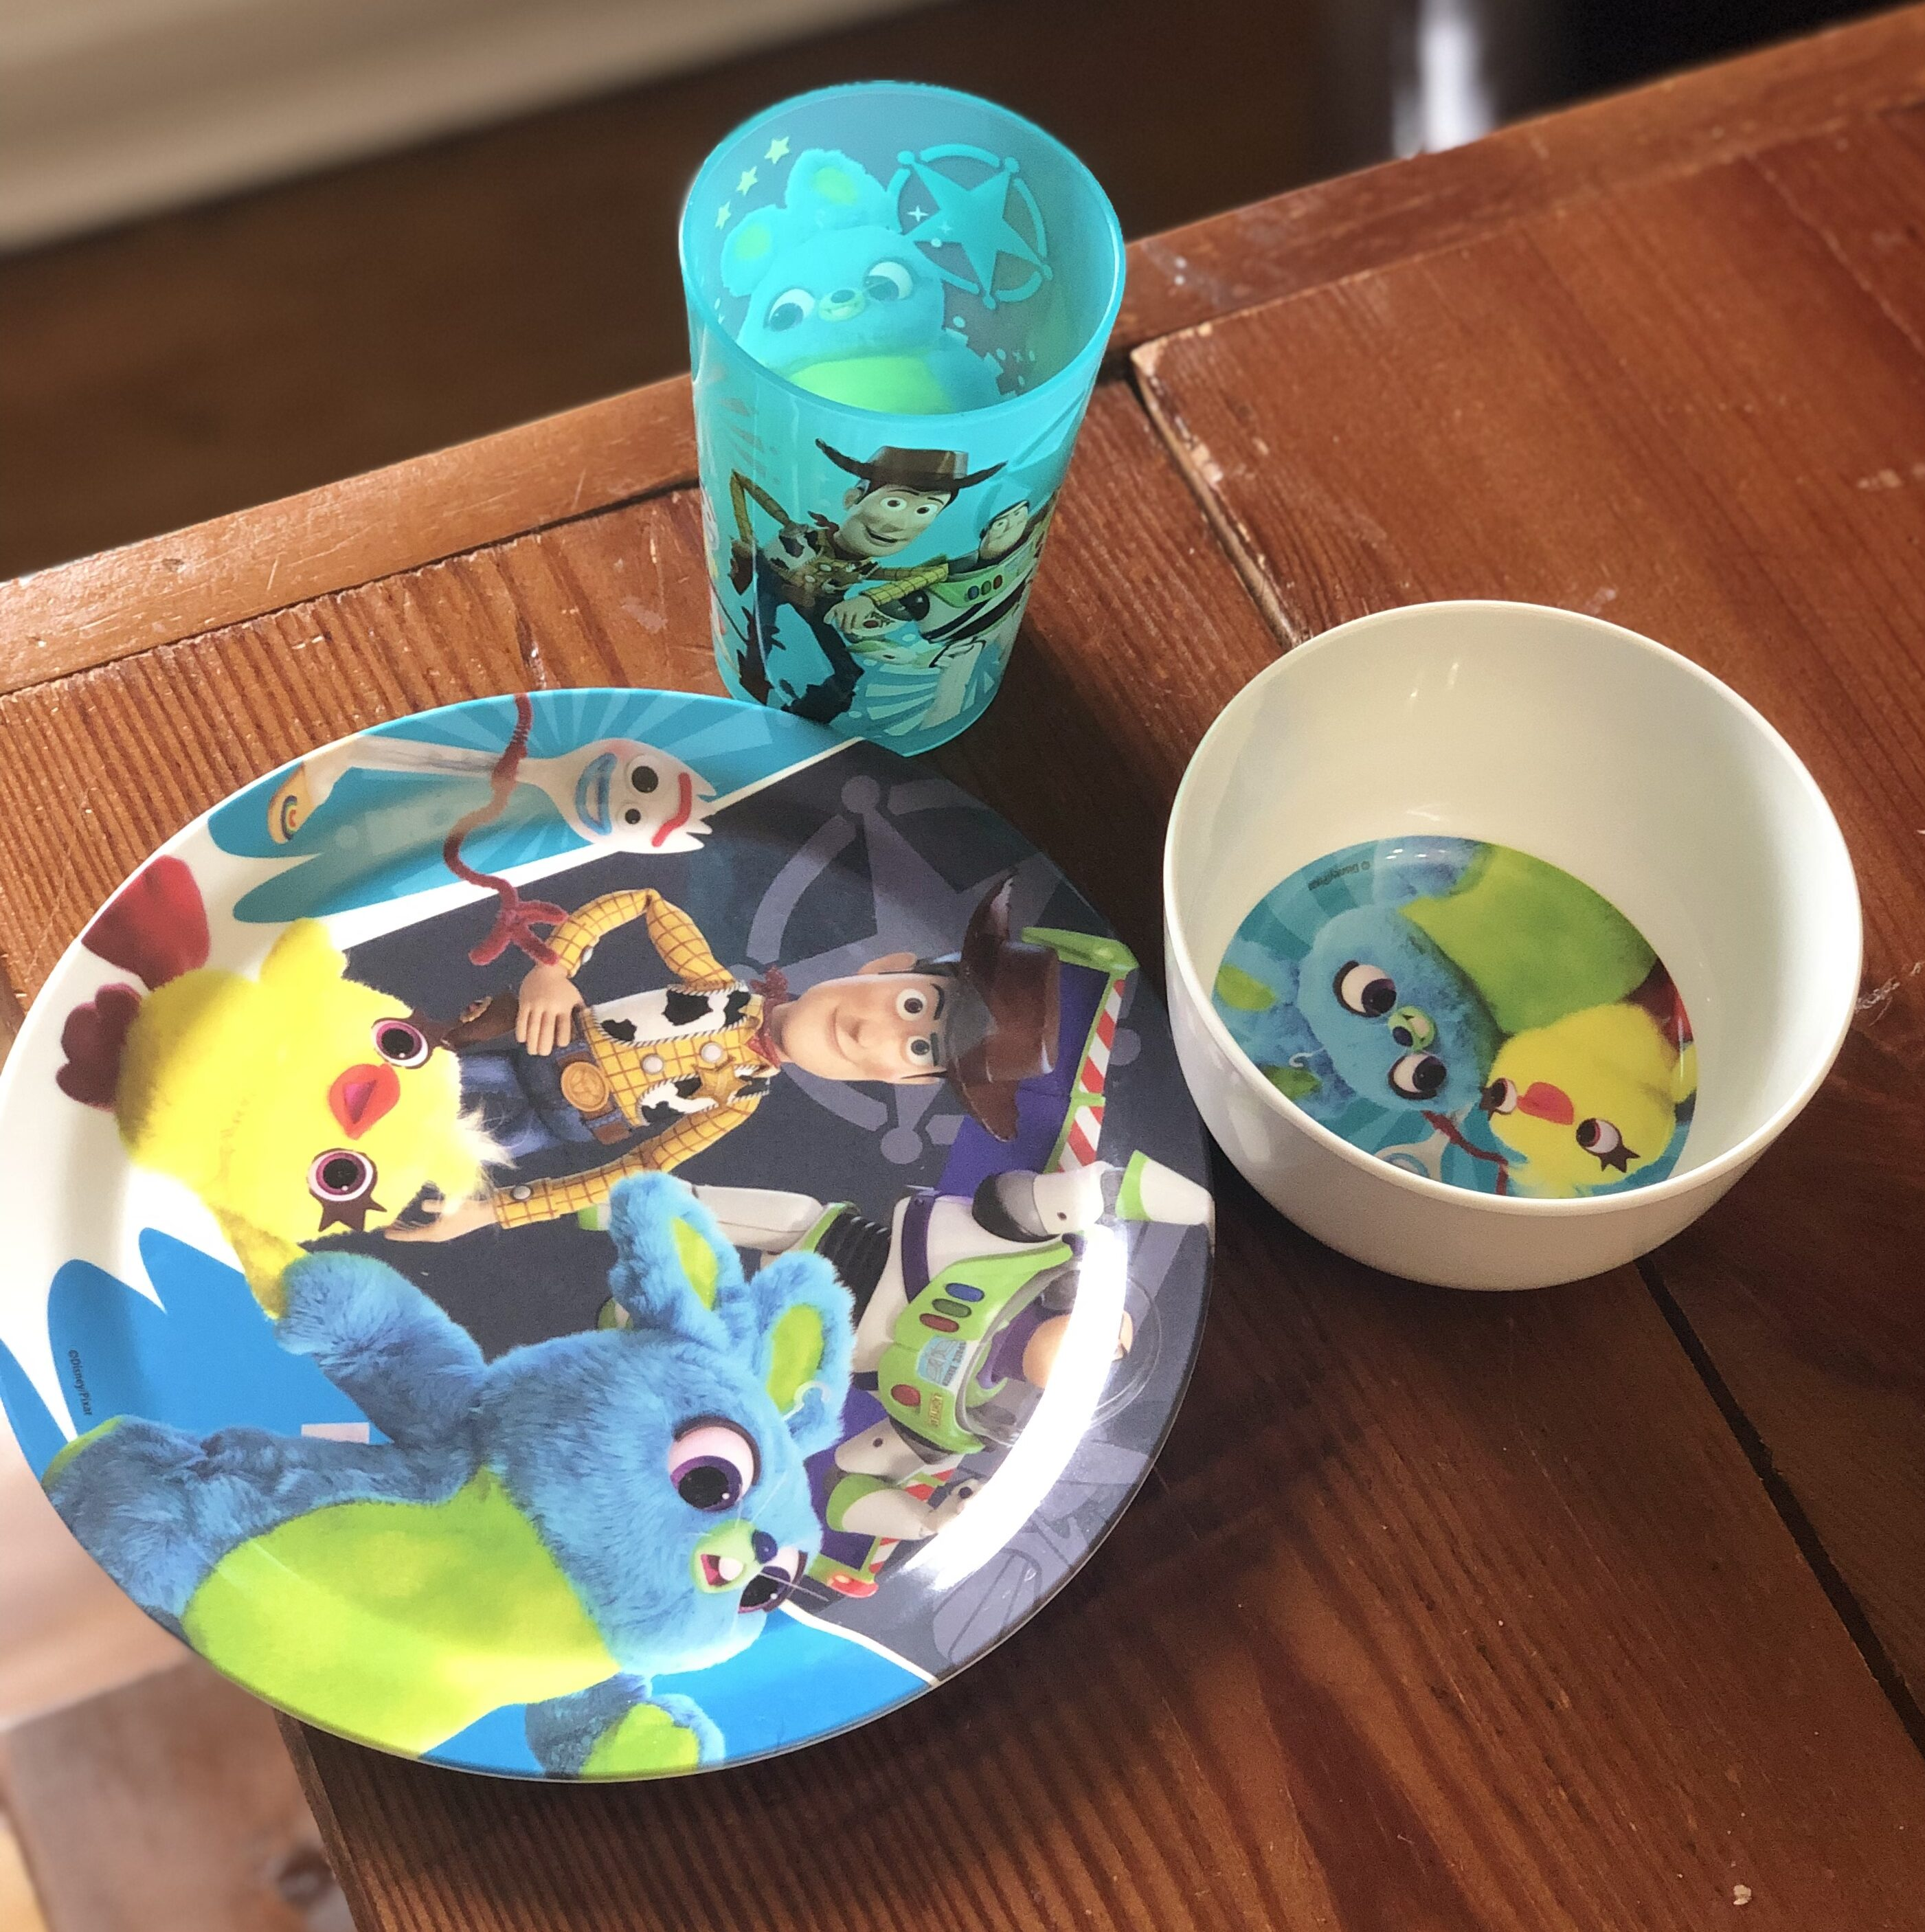 Kids Can Show Their Love for Toy Story at Dinnertime